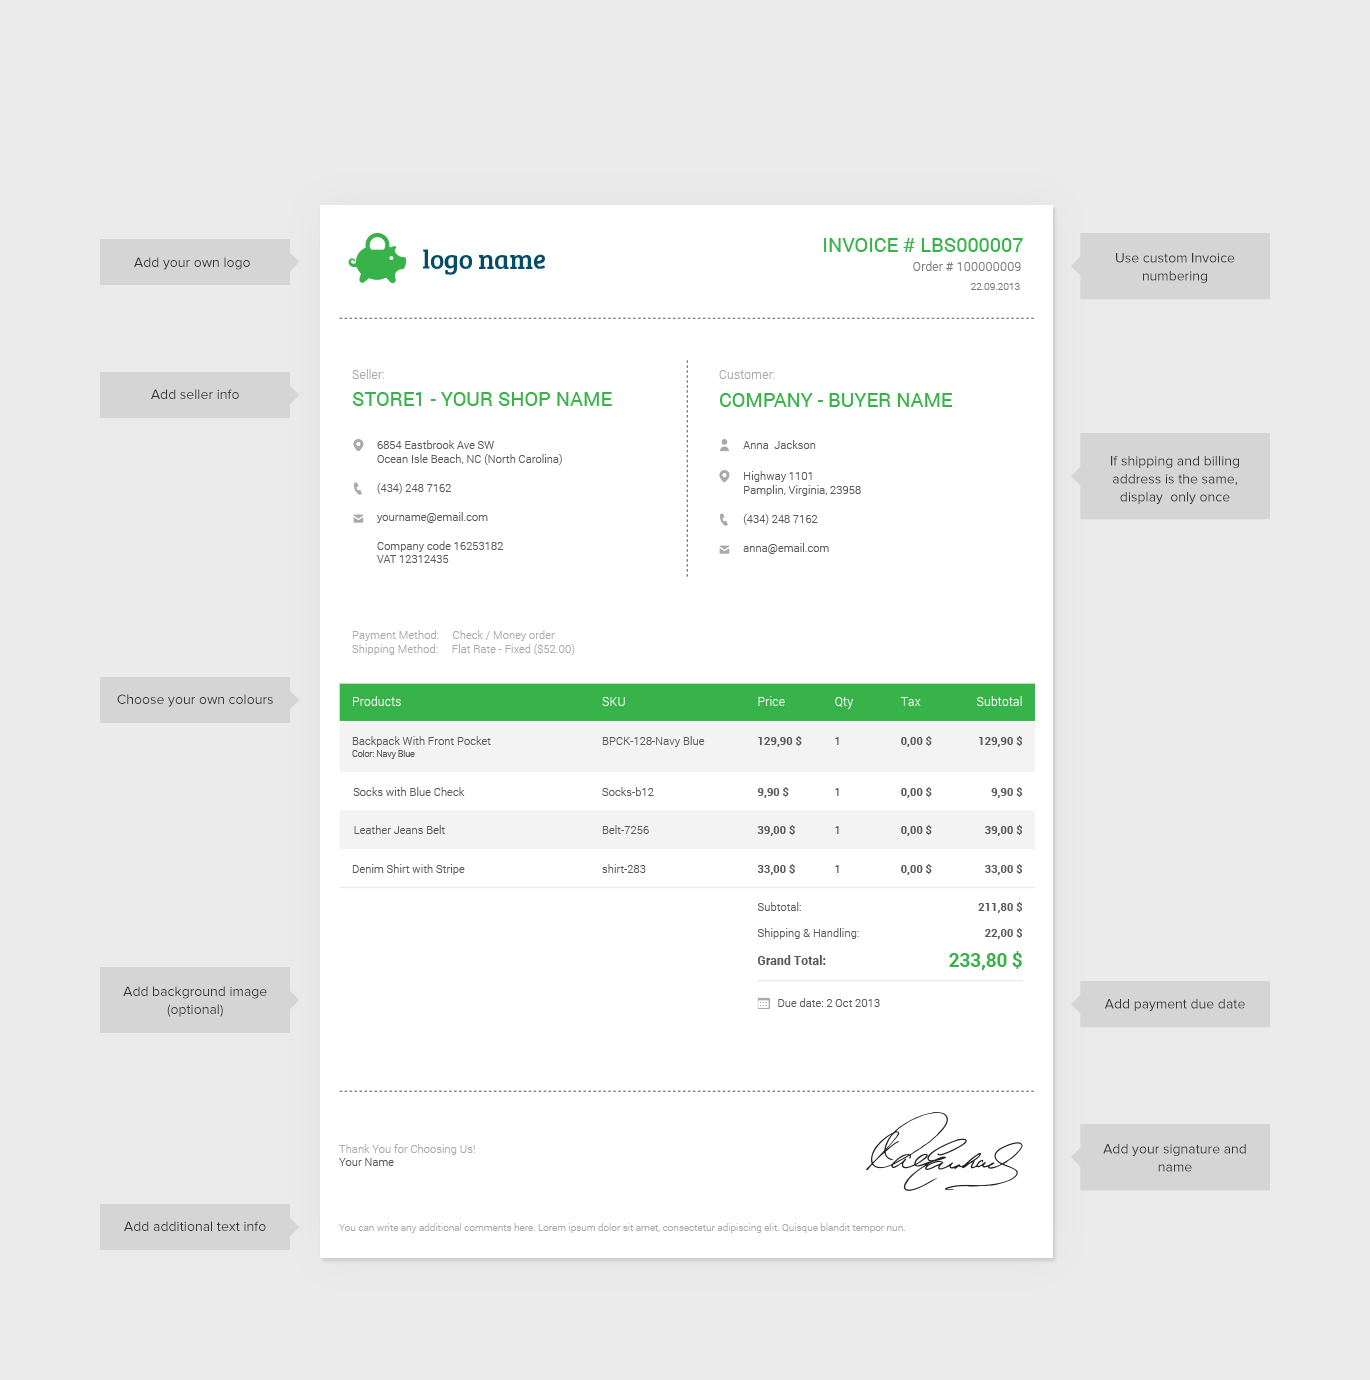 download zen cart invoice template | rabitah, Invoice templates